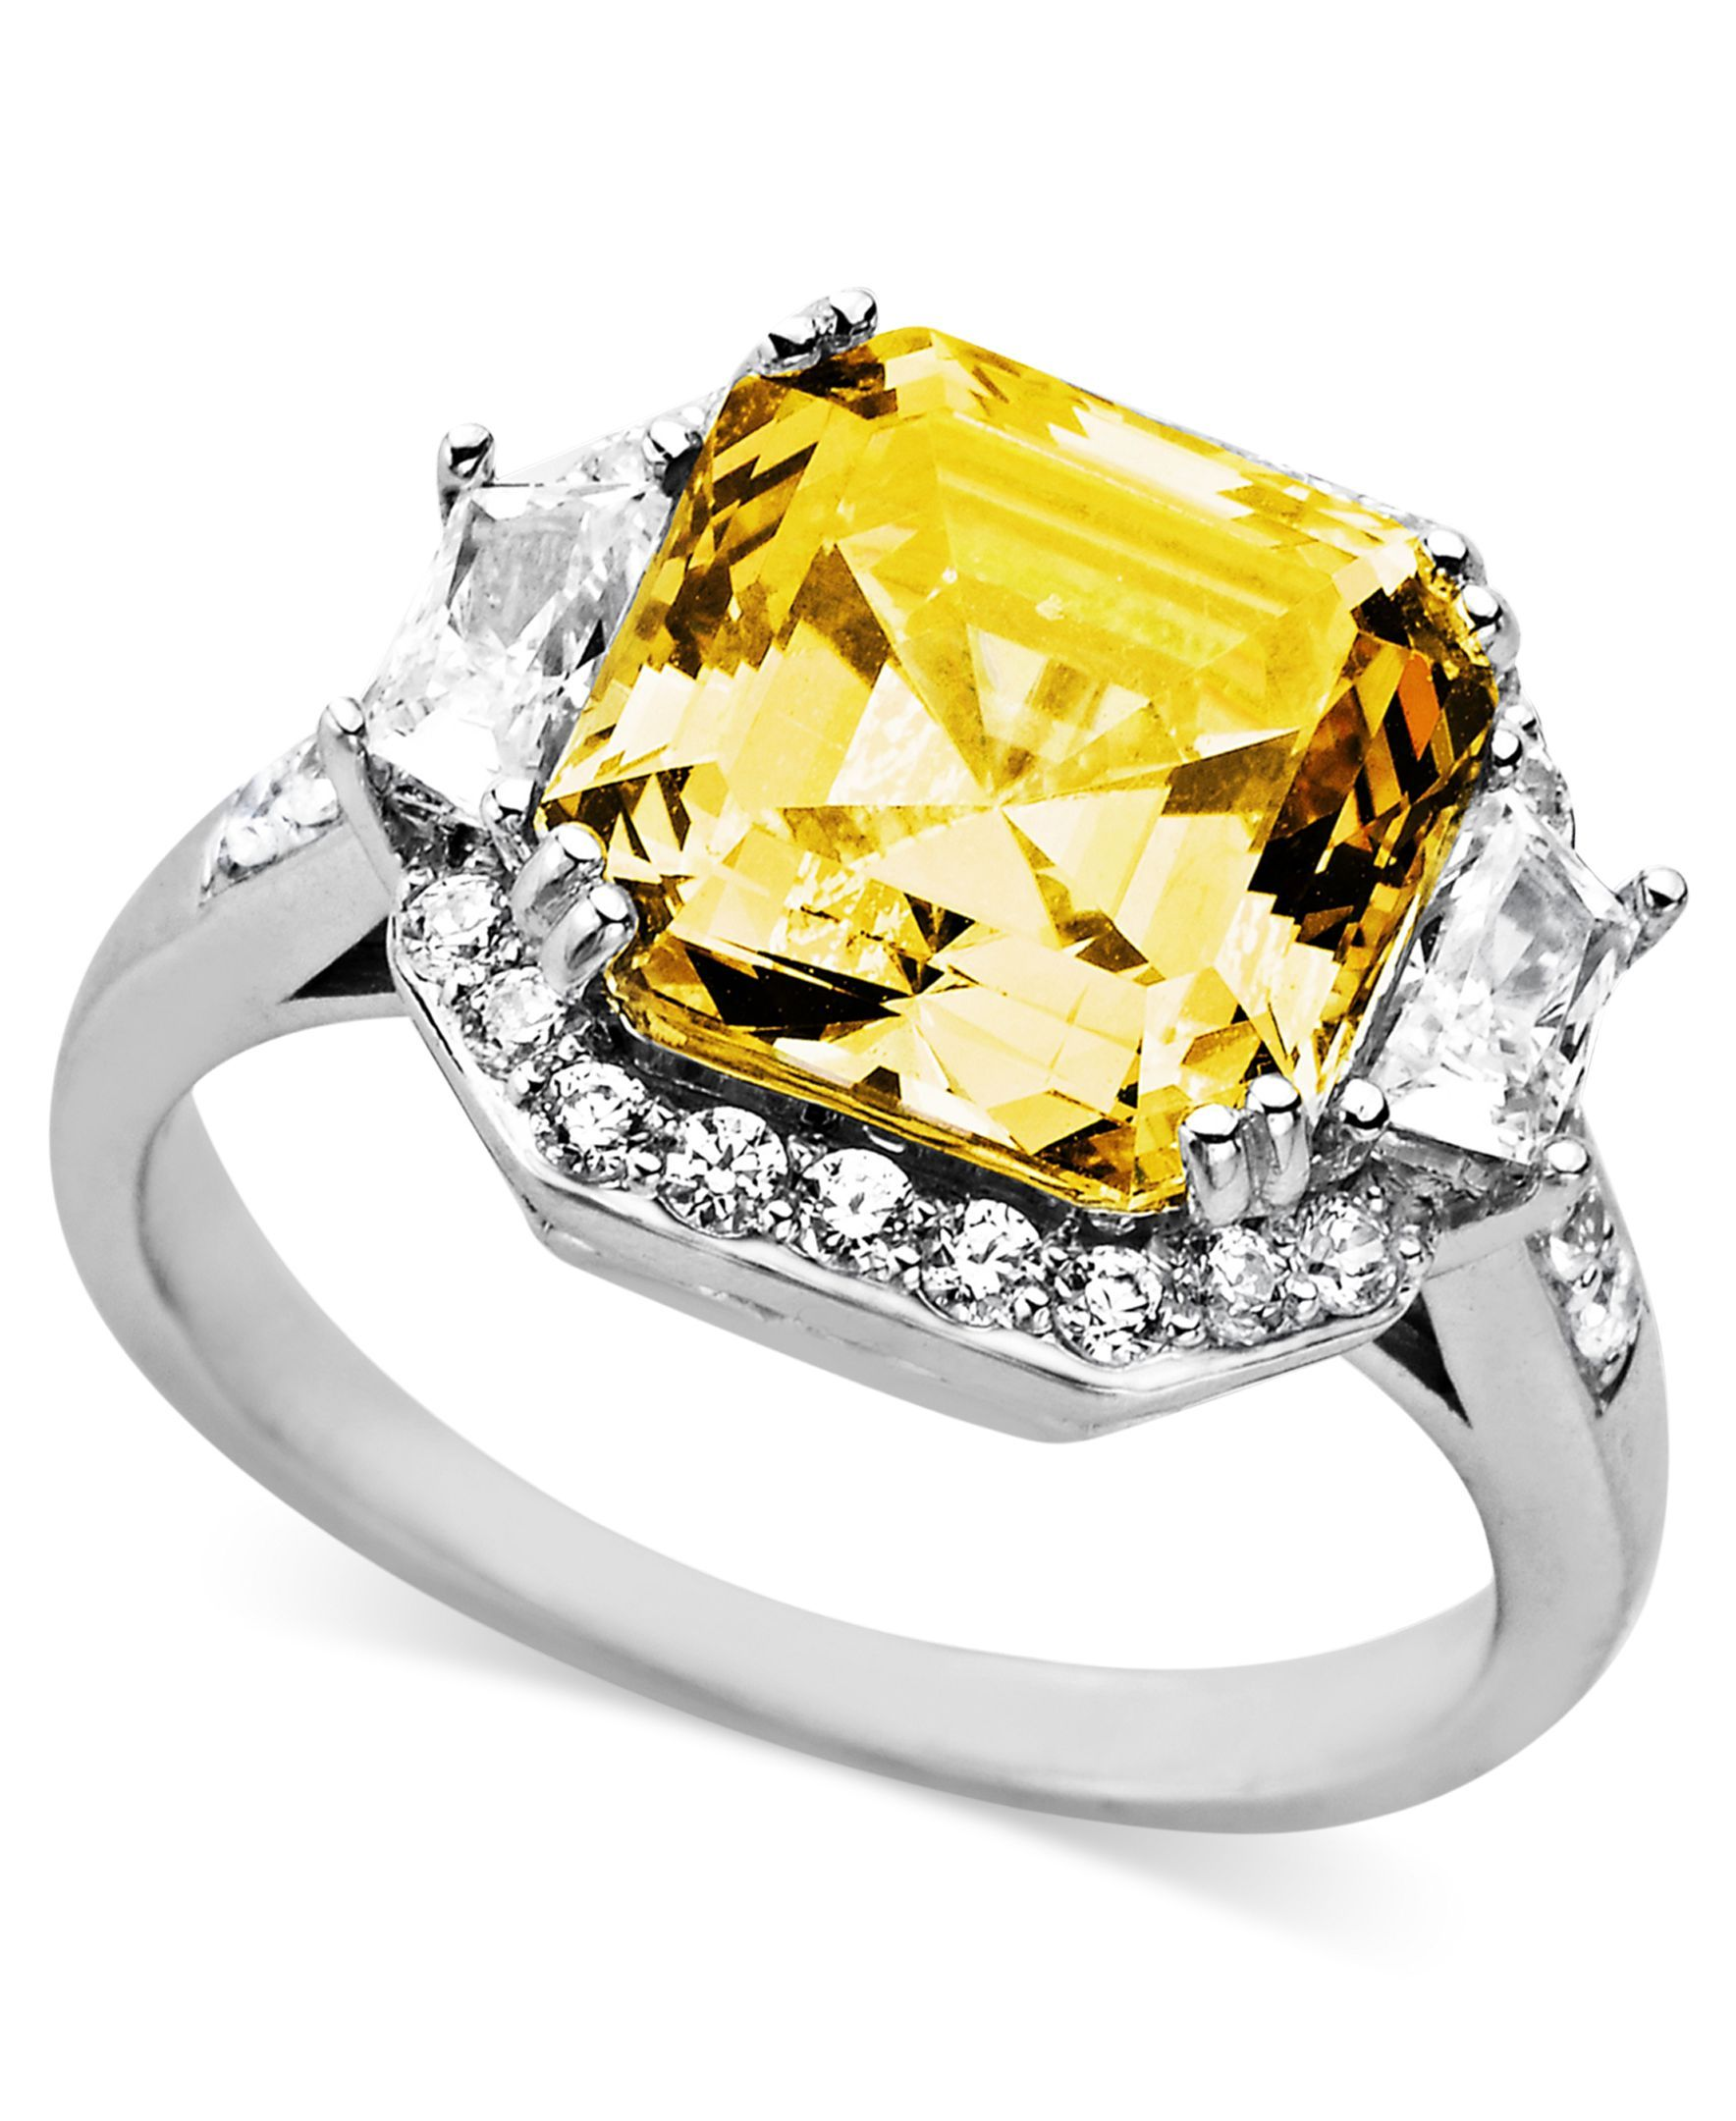 f5cb574c9 Arabella Sterling Silver Ring, Yellow and White Swarovski Zirconia Cushion  Cut Ring (10-1/3 ct. t.w.)